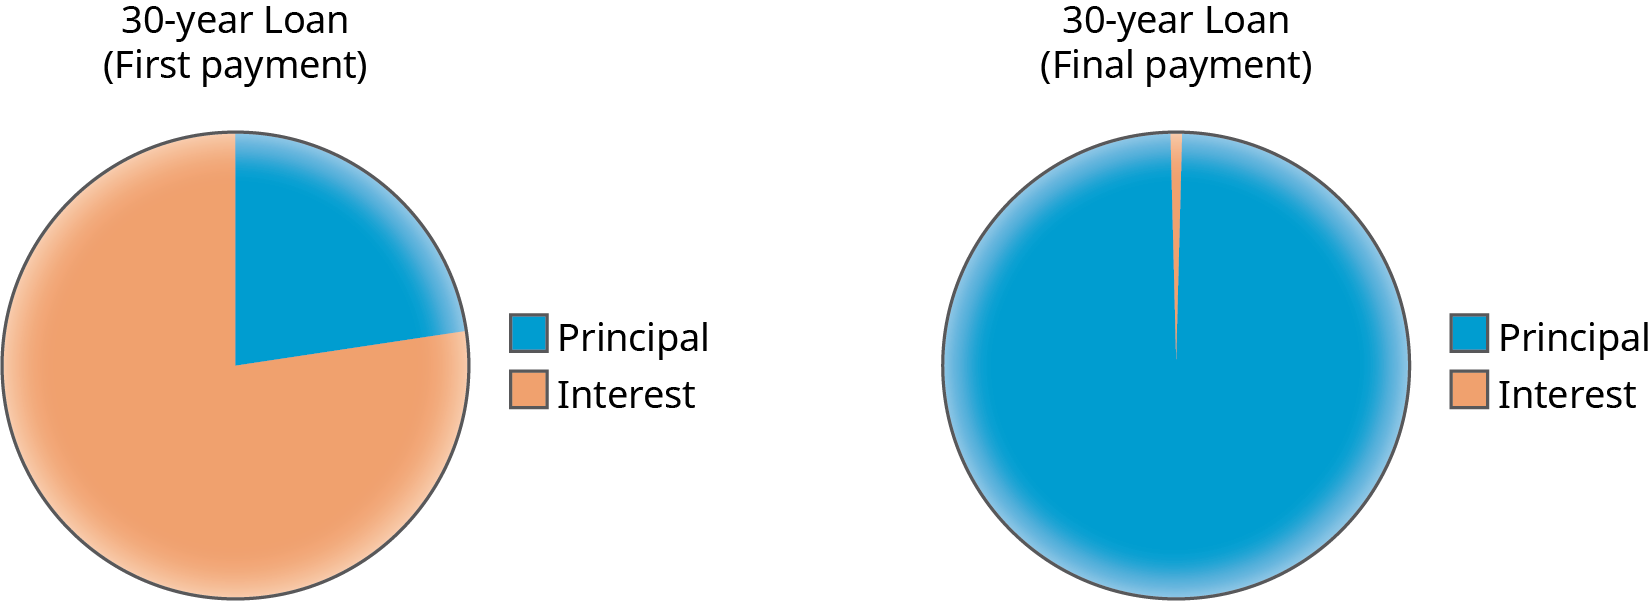 """Two pie charts showing the first and final payments on a 30-year loan. The pie chart on the left shows the first payment. A little over three quarters of the chart is """"Interest"""" and the rest is """"Principal."""" The pie chart on the right shows the final payment. The majority of the chart is """"Principal"""" and a very small portion is """"Interest."""""""